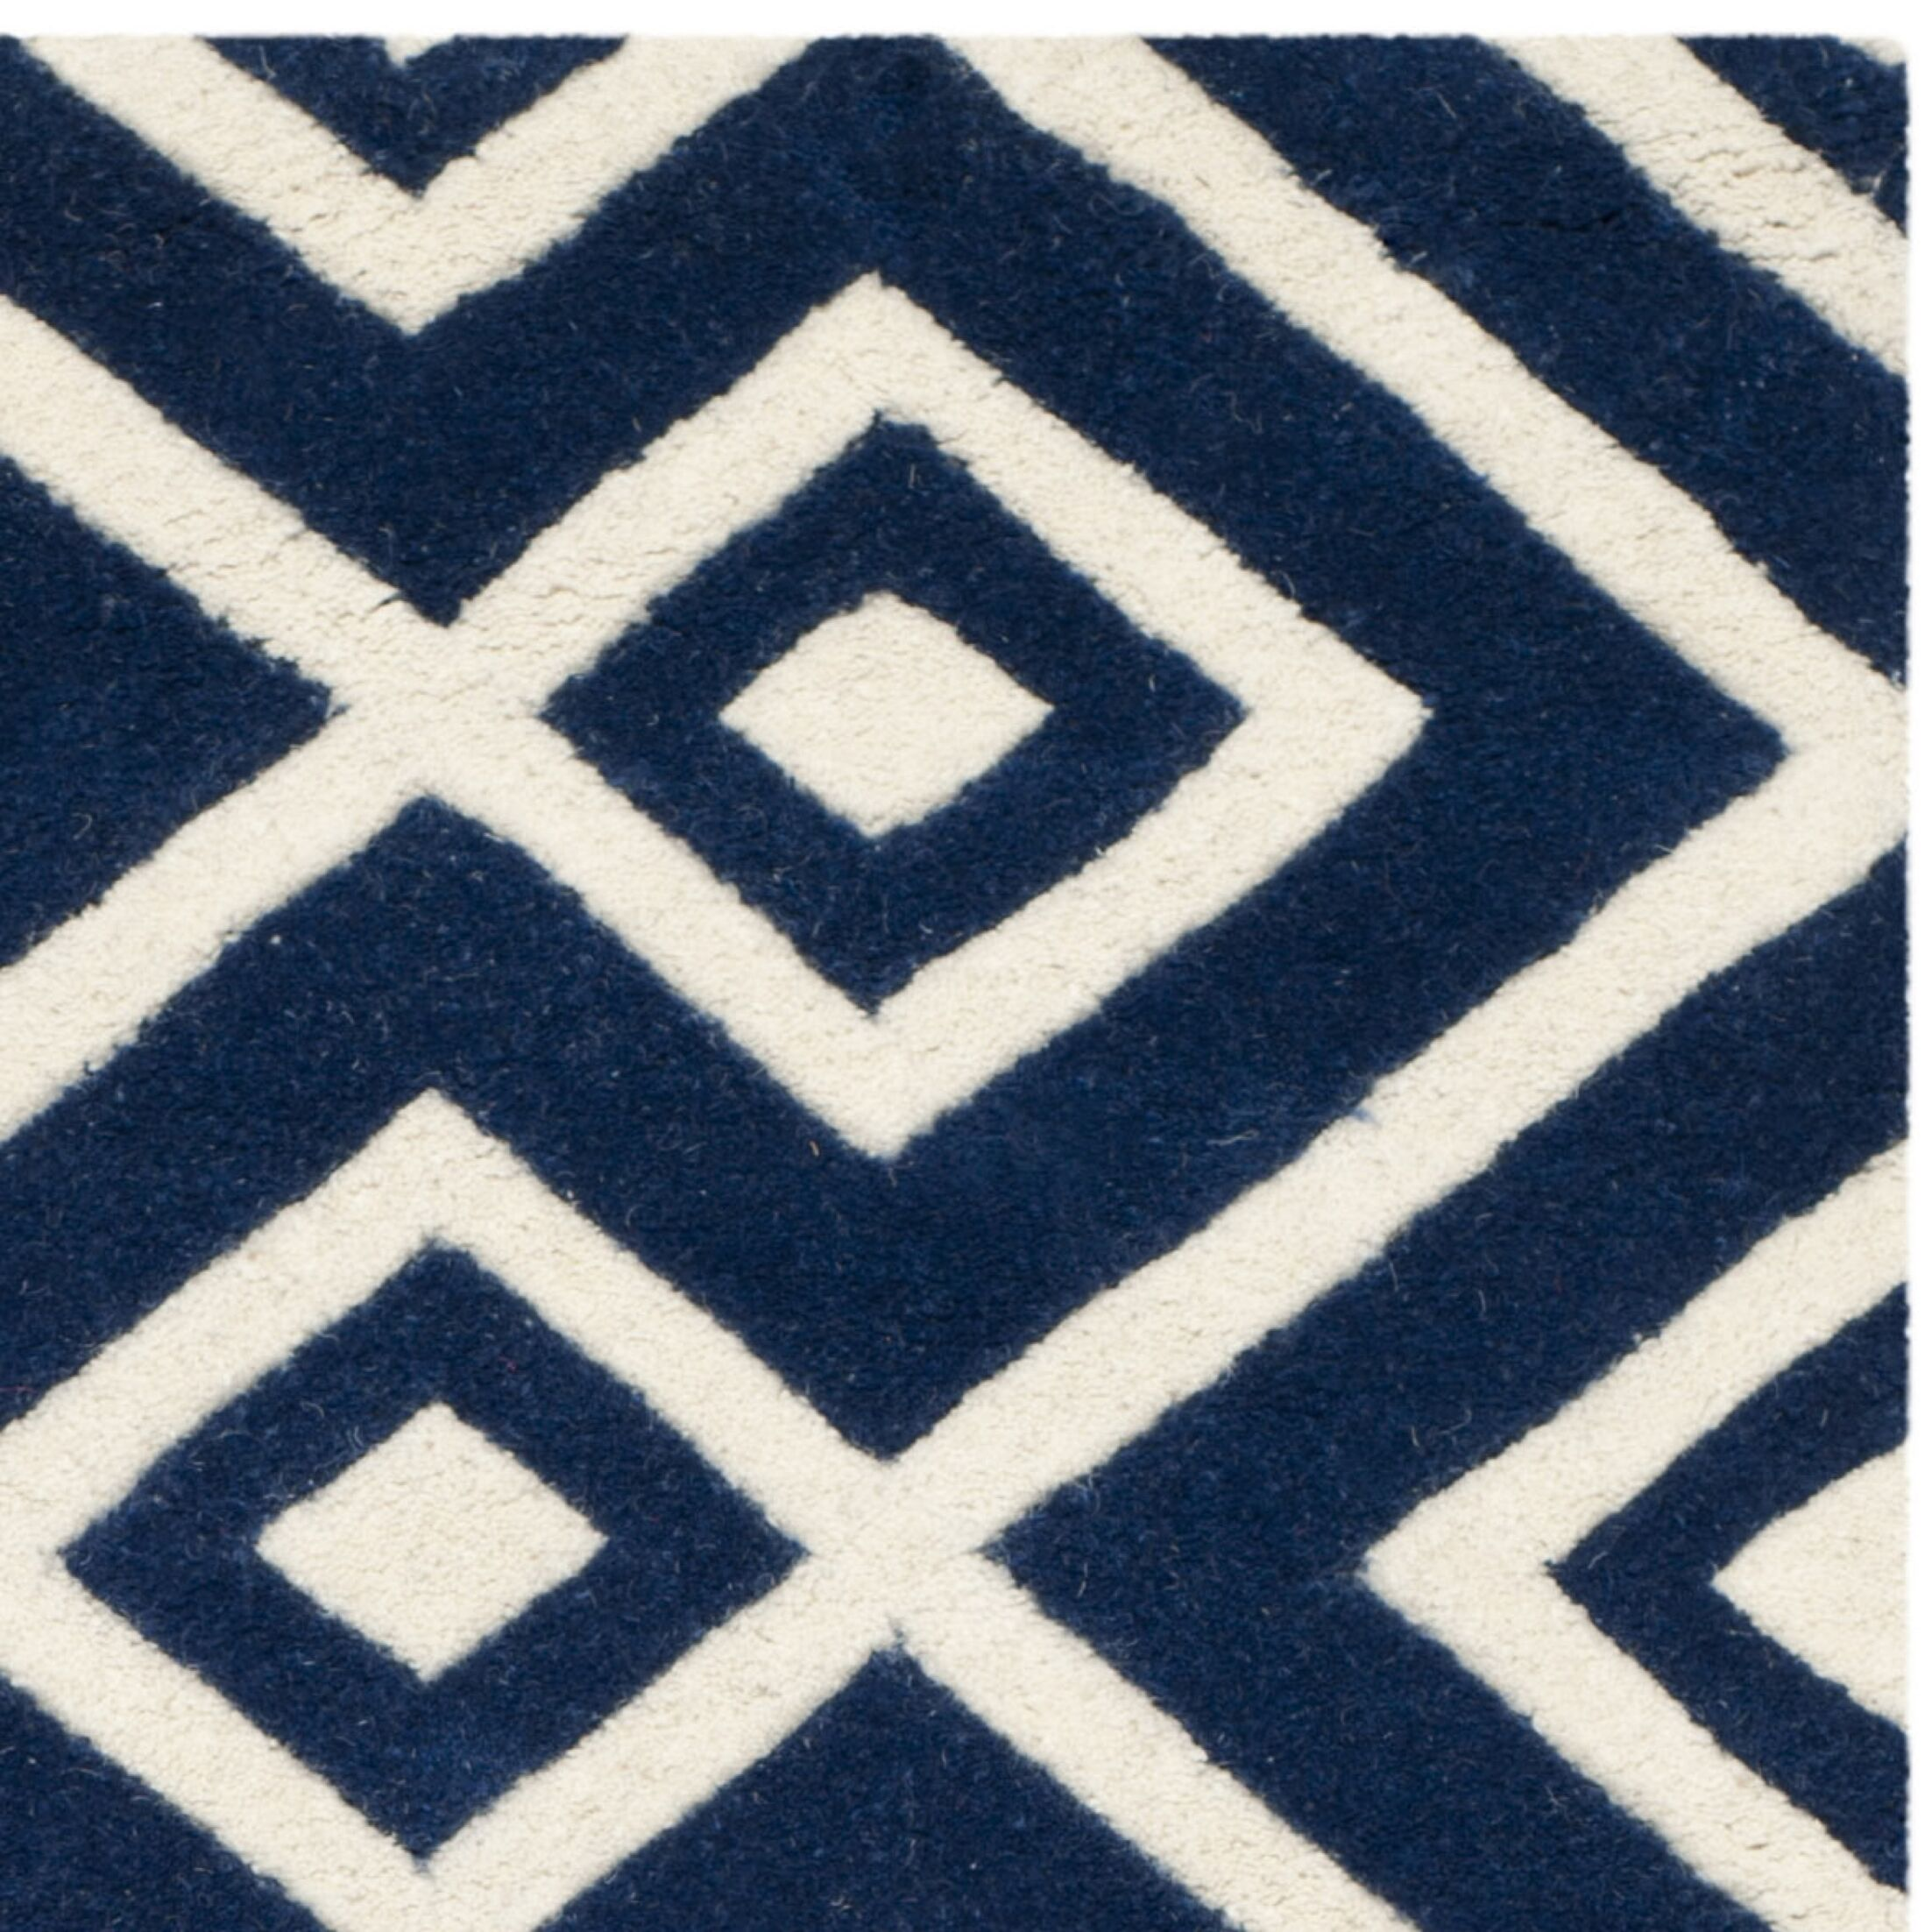 Wilkin Hand-Tufted Wool Dark Blue/Ivory Rug Rug Size: Rectangle 3' x 5'